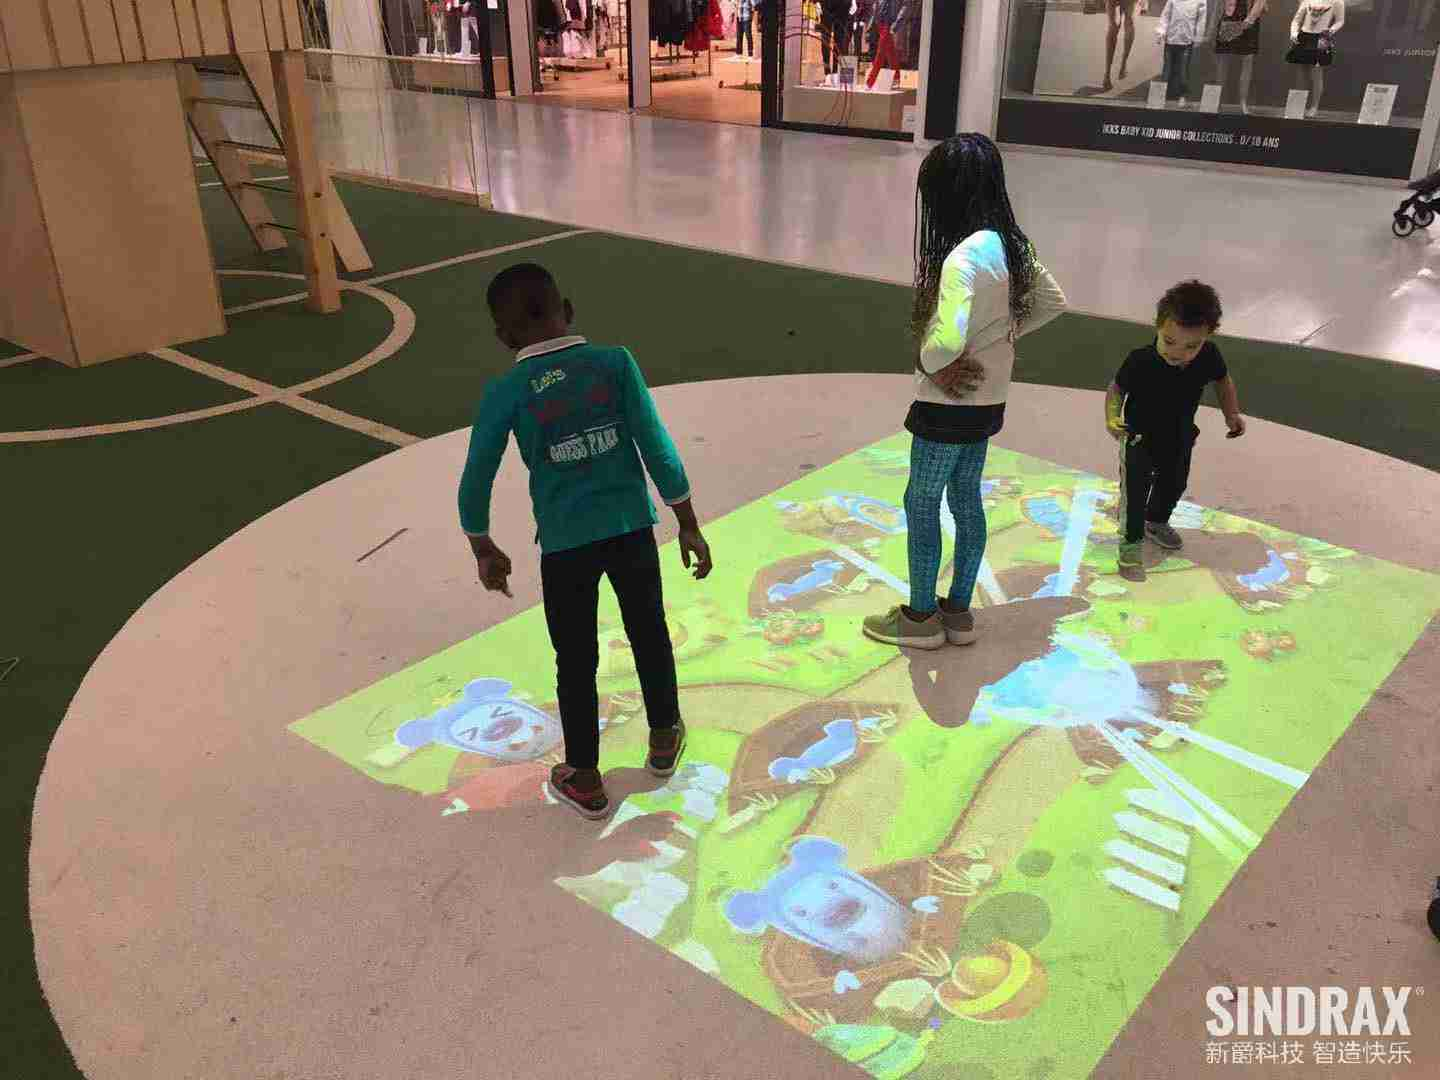 Paris Shopping Mall Interactive Zone